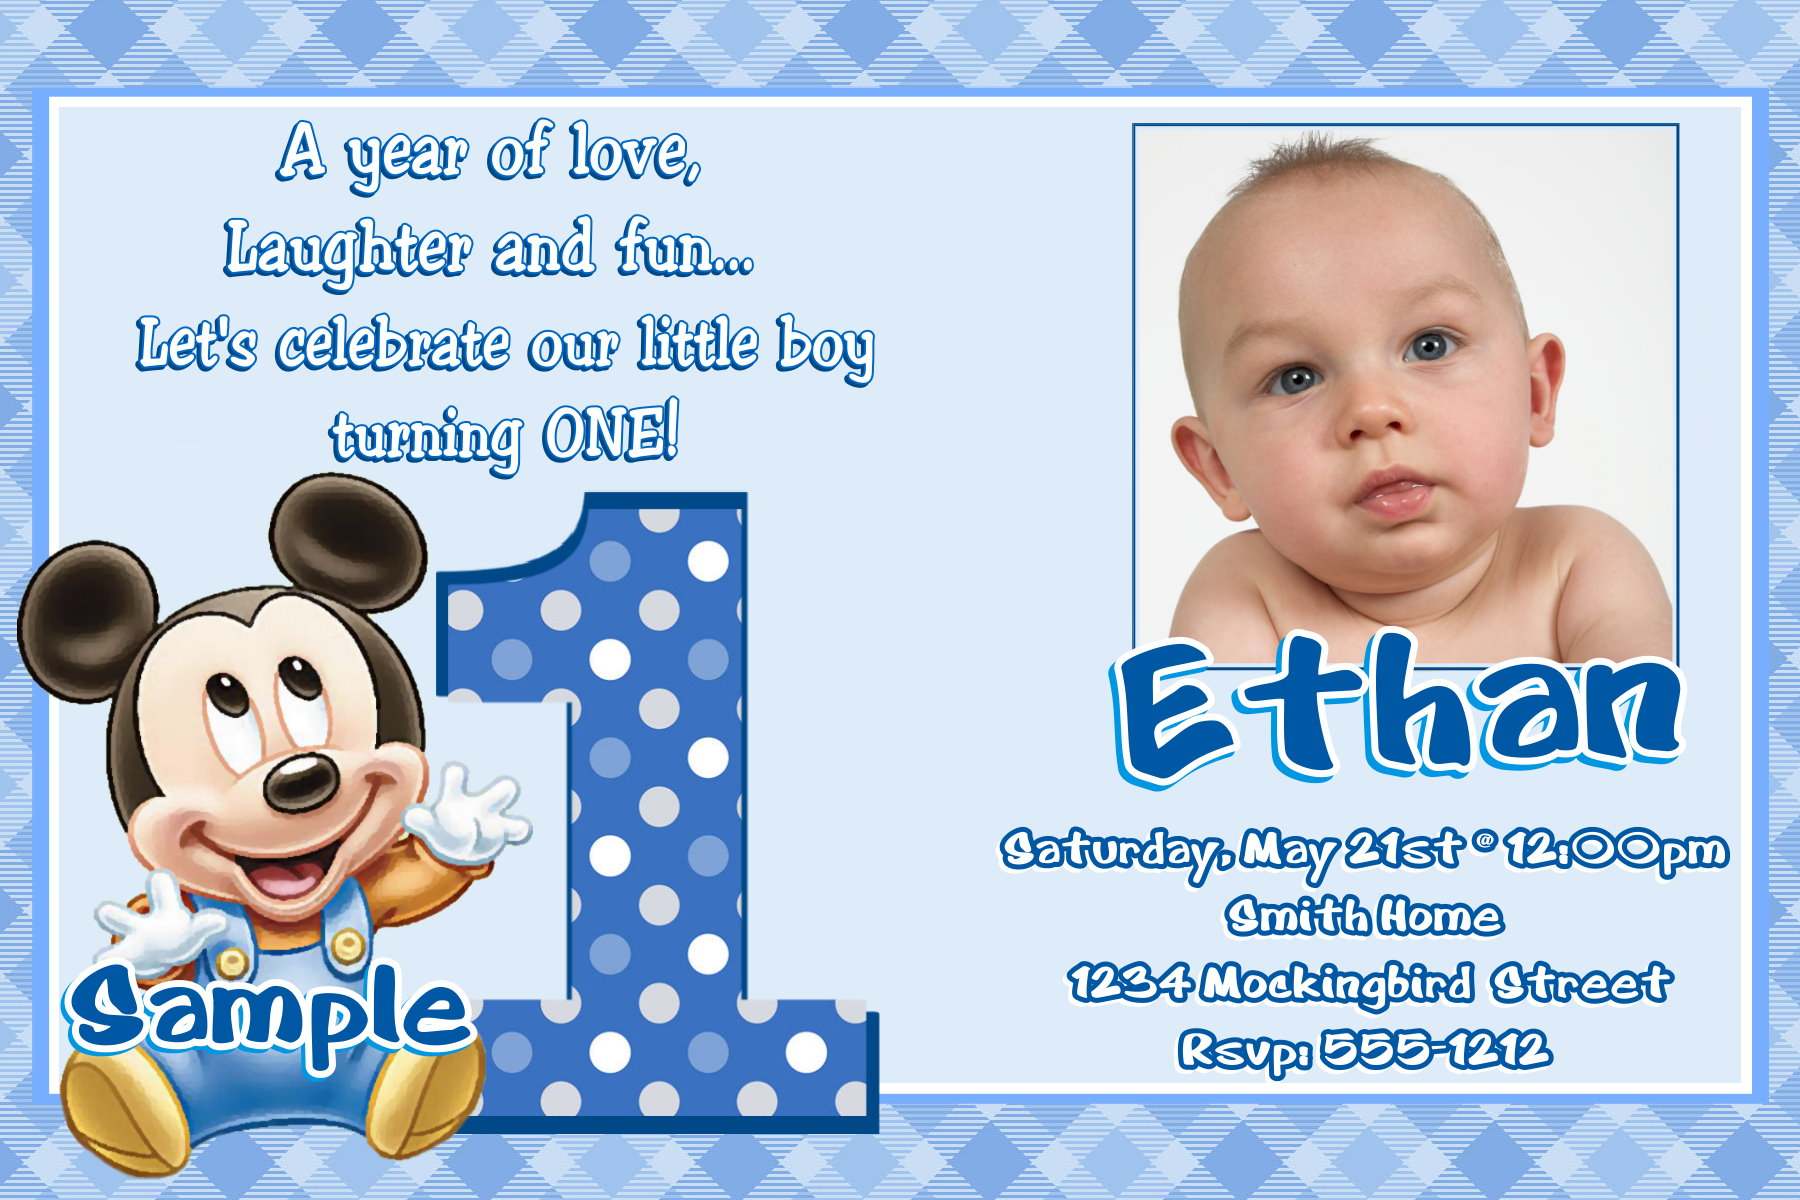 birthday invitation card design template free download ; 1St-Birthday-Invitation-Sample-and-get-inspiration-to-create-the-birthday-Invitation-design-of-your-dreams-1